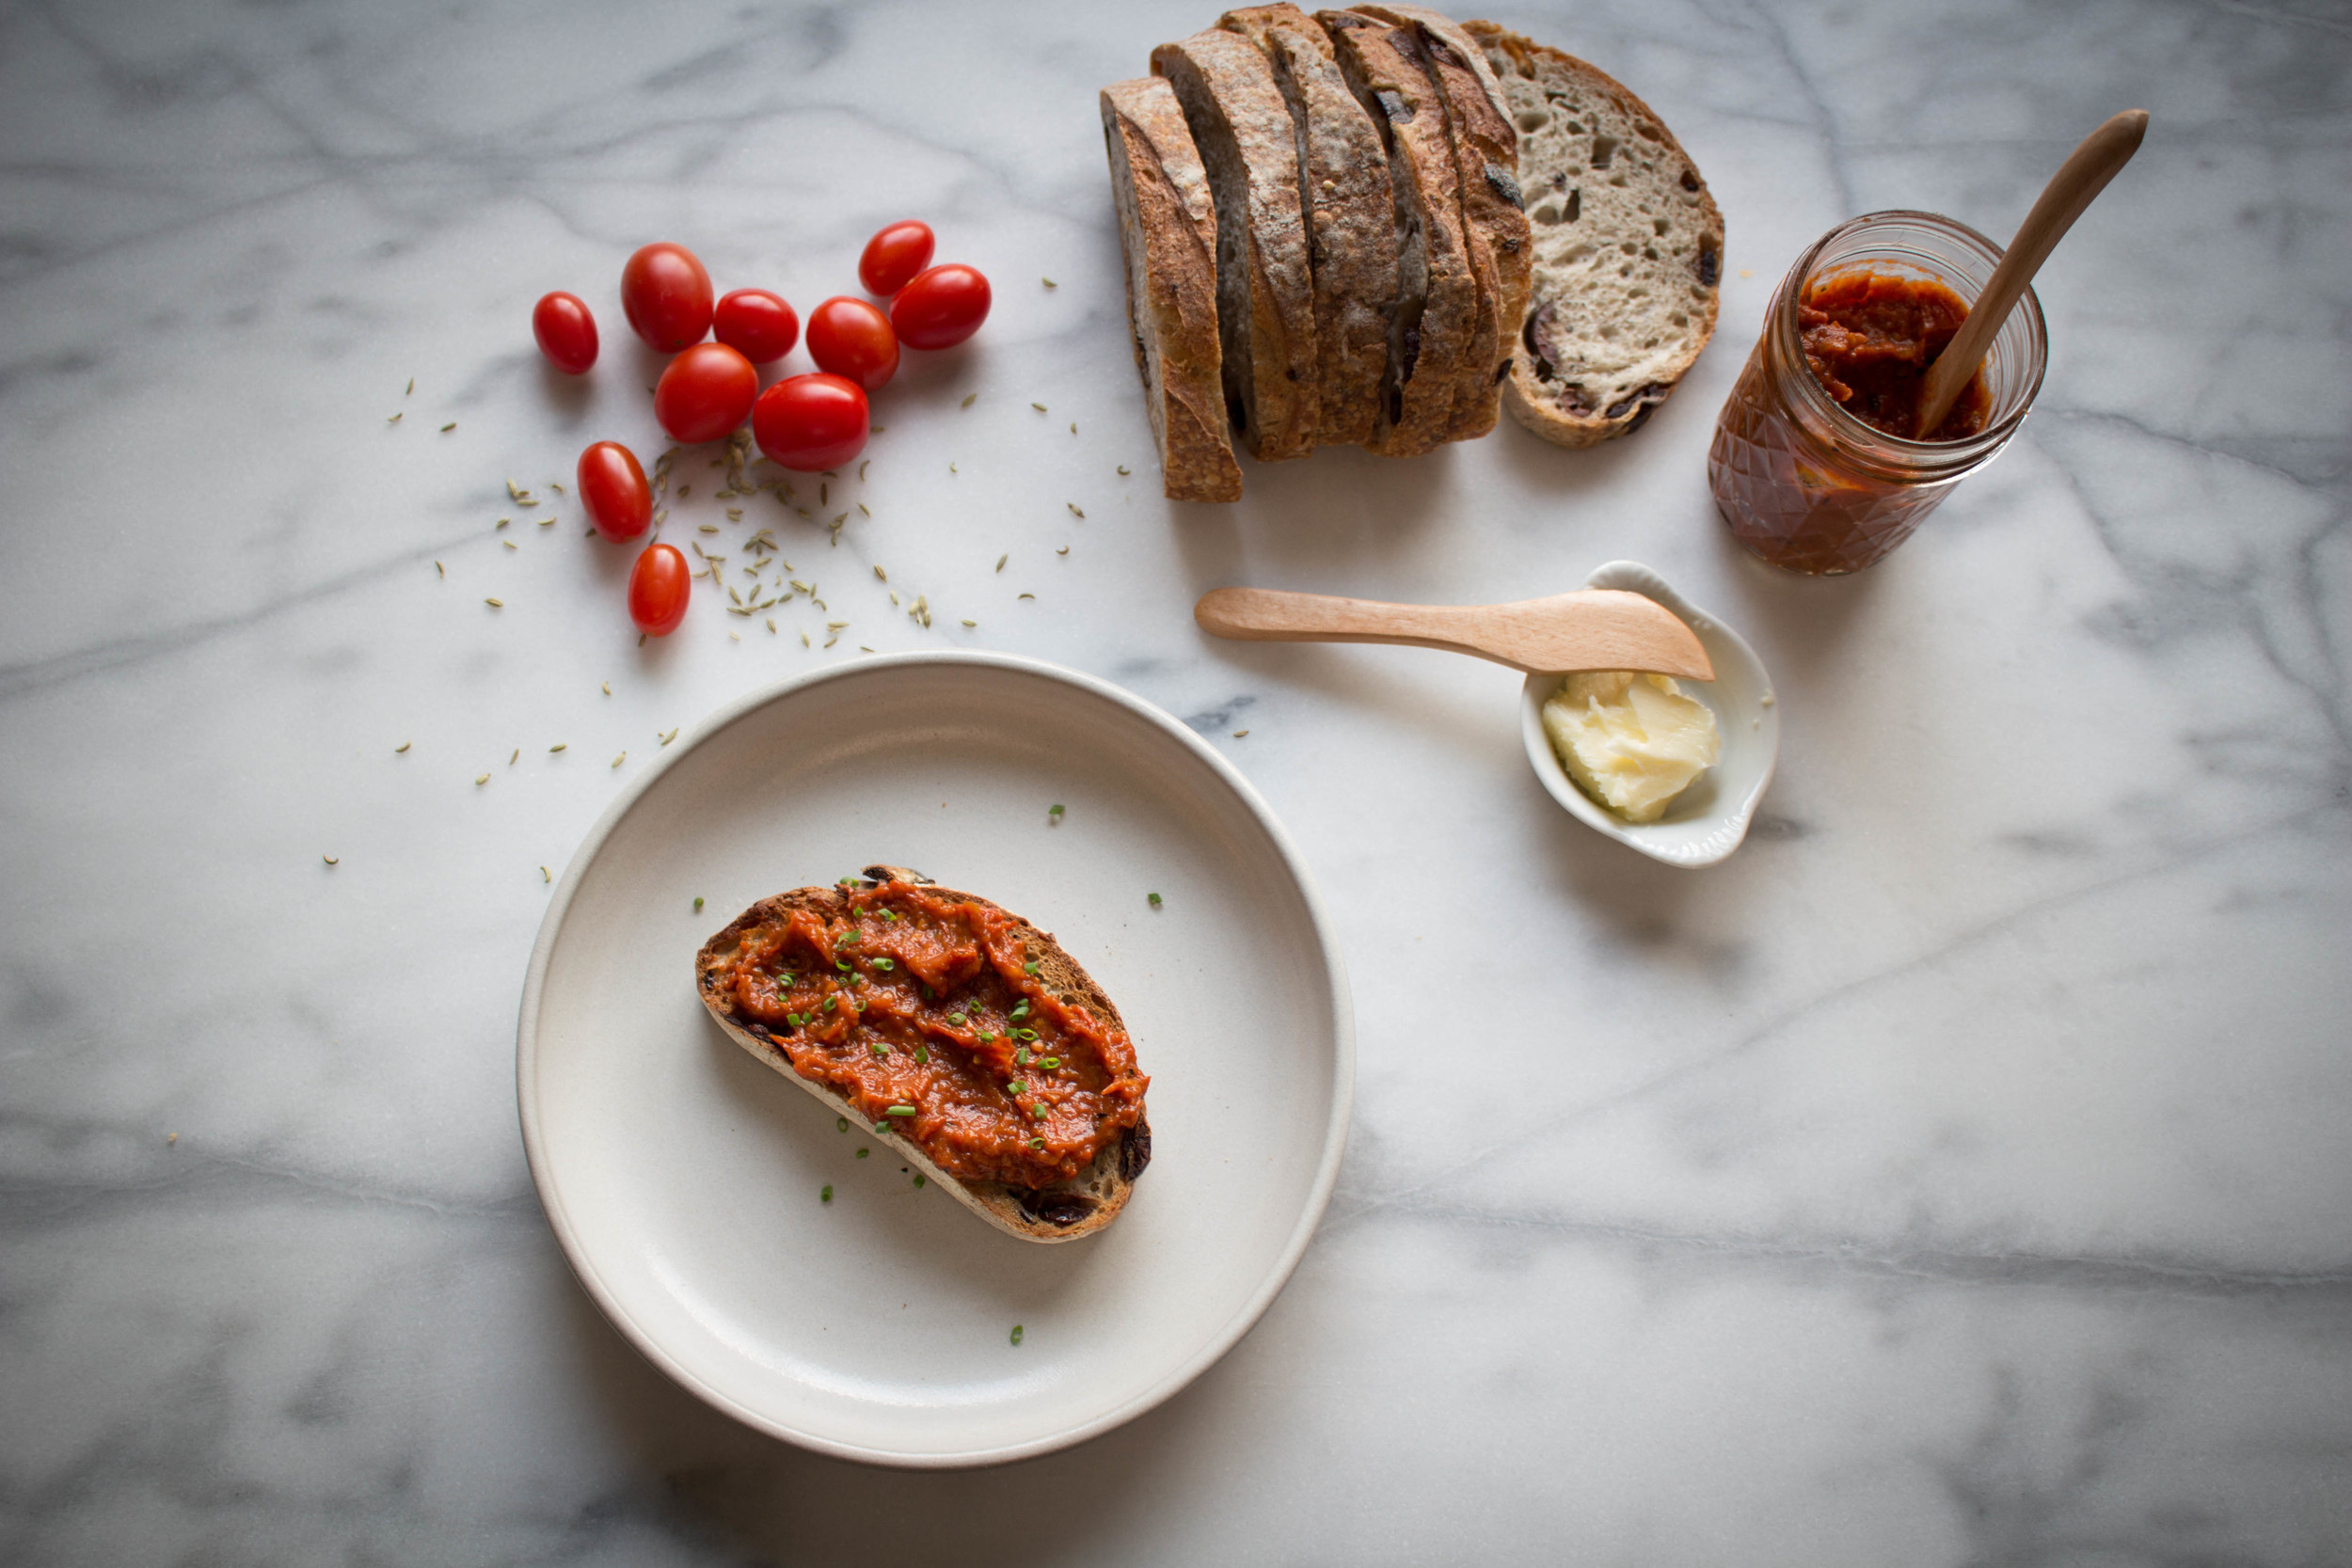 Tomato and Toasted Fennel Seed Jam